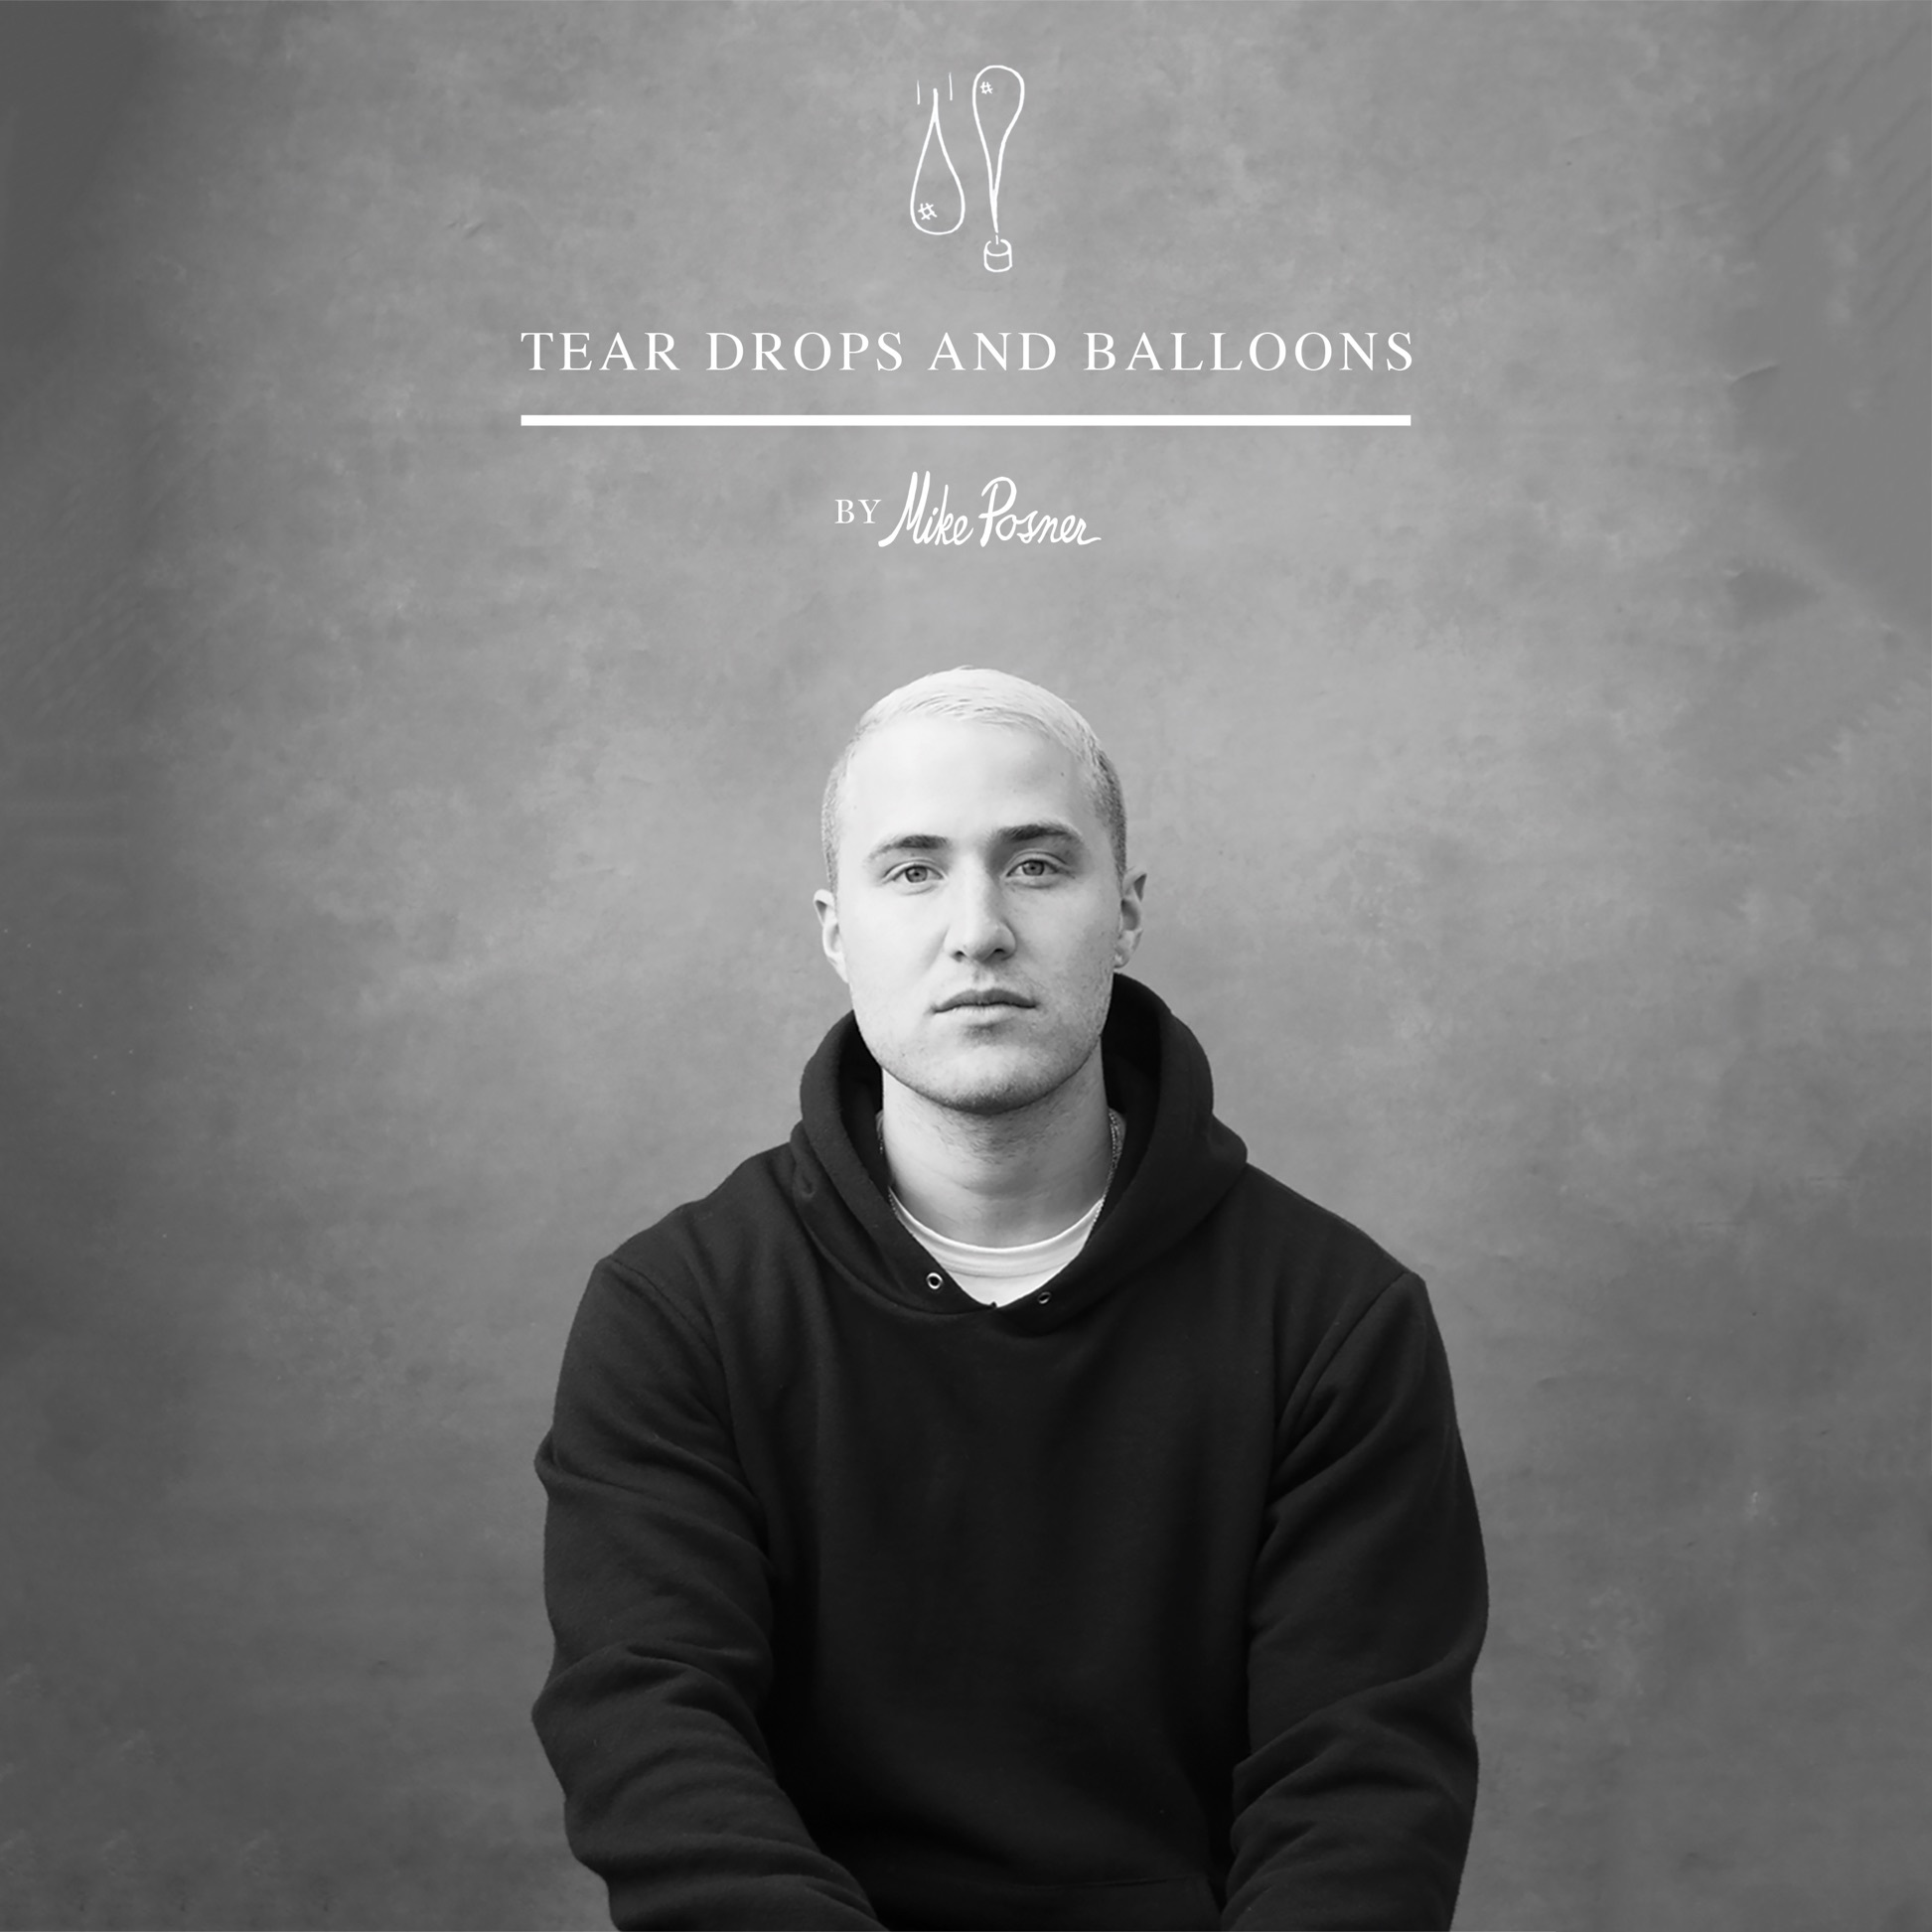 Mike Posner - Tear Drops And Balloons (audiobook)